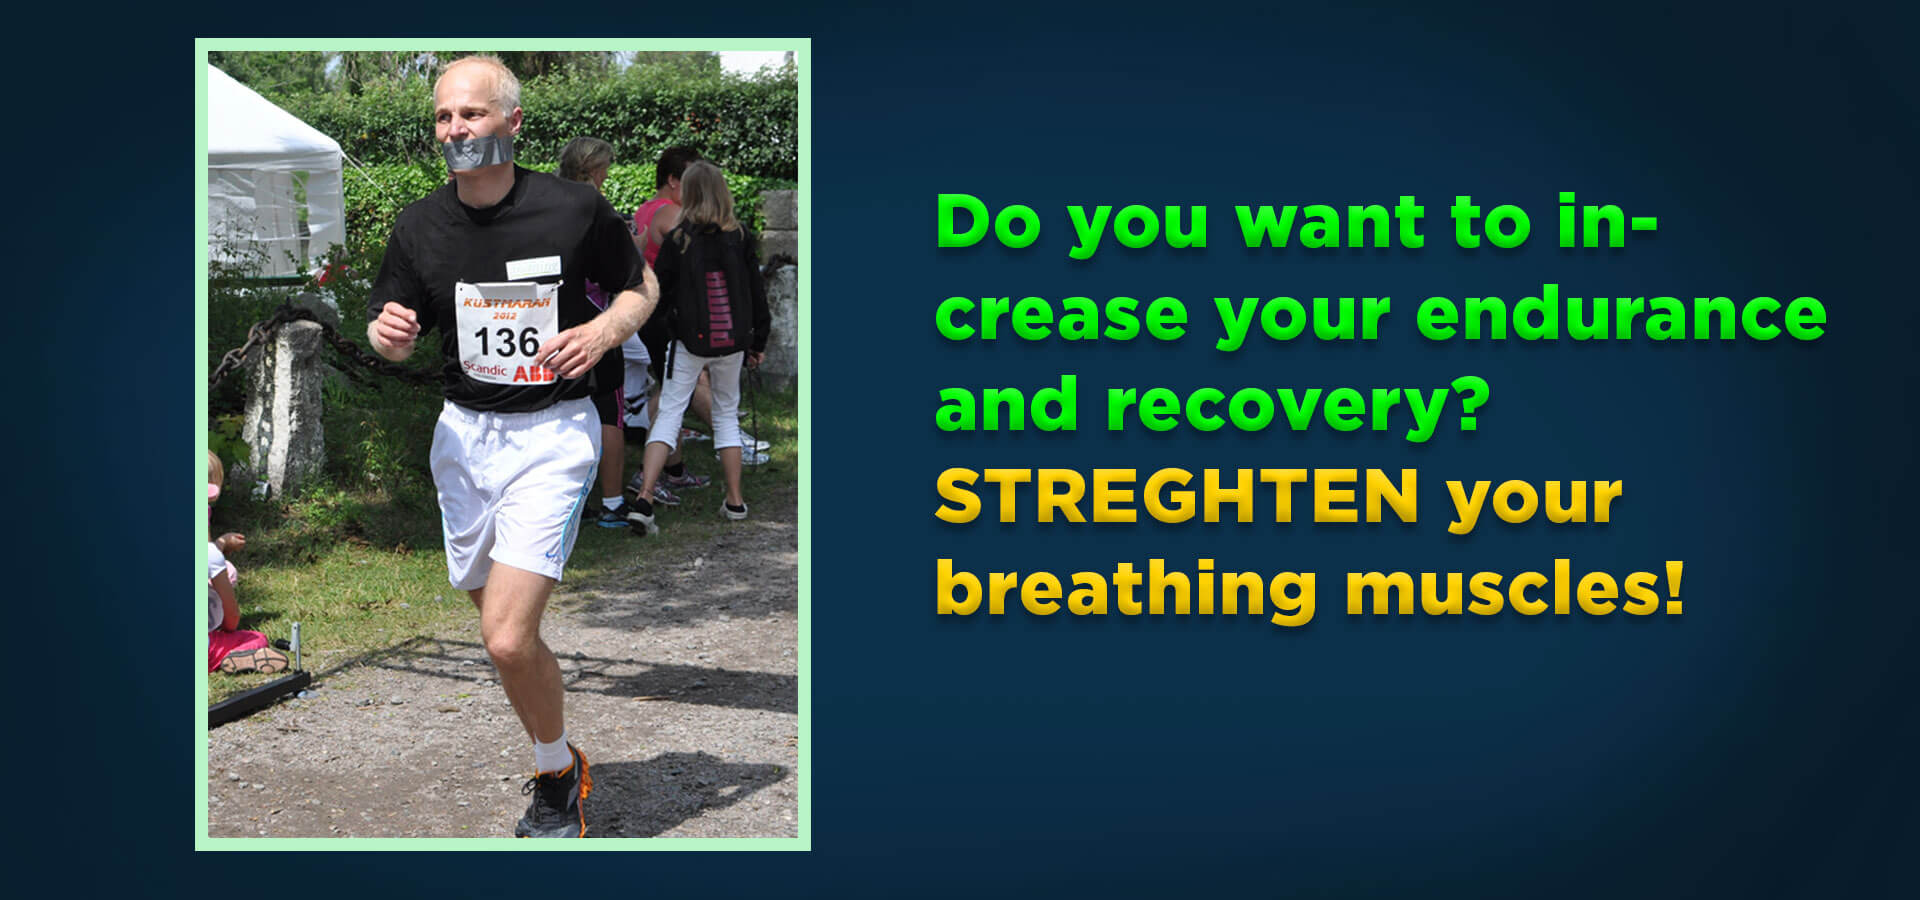 STRENGHTEN your breathing muscles!